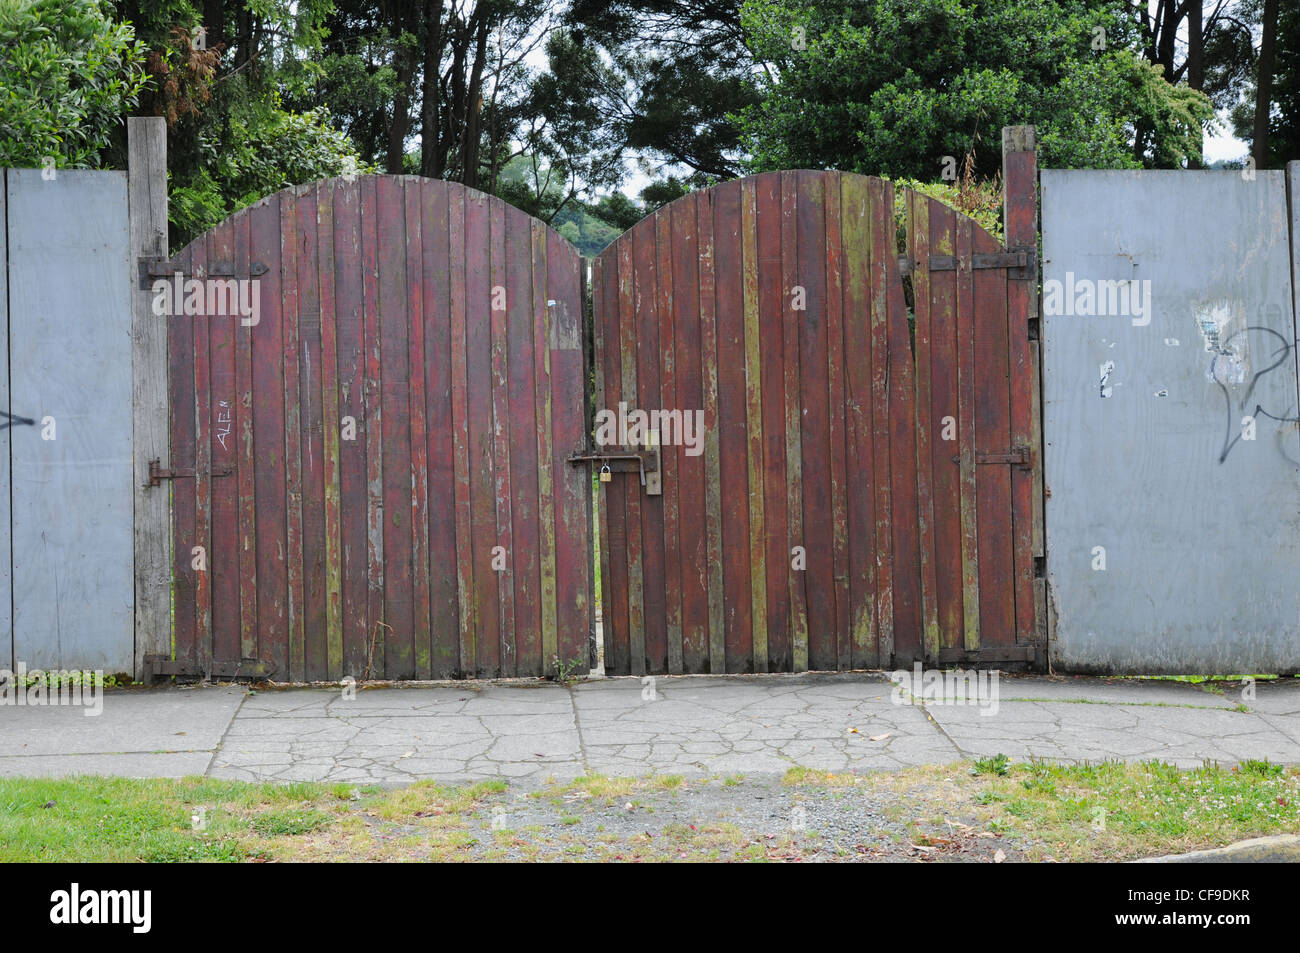 padlocked, insecure, brown wooden gates. - Stock Image